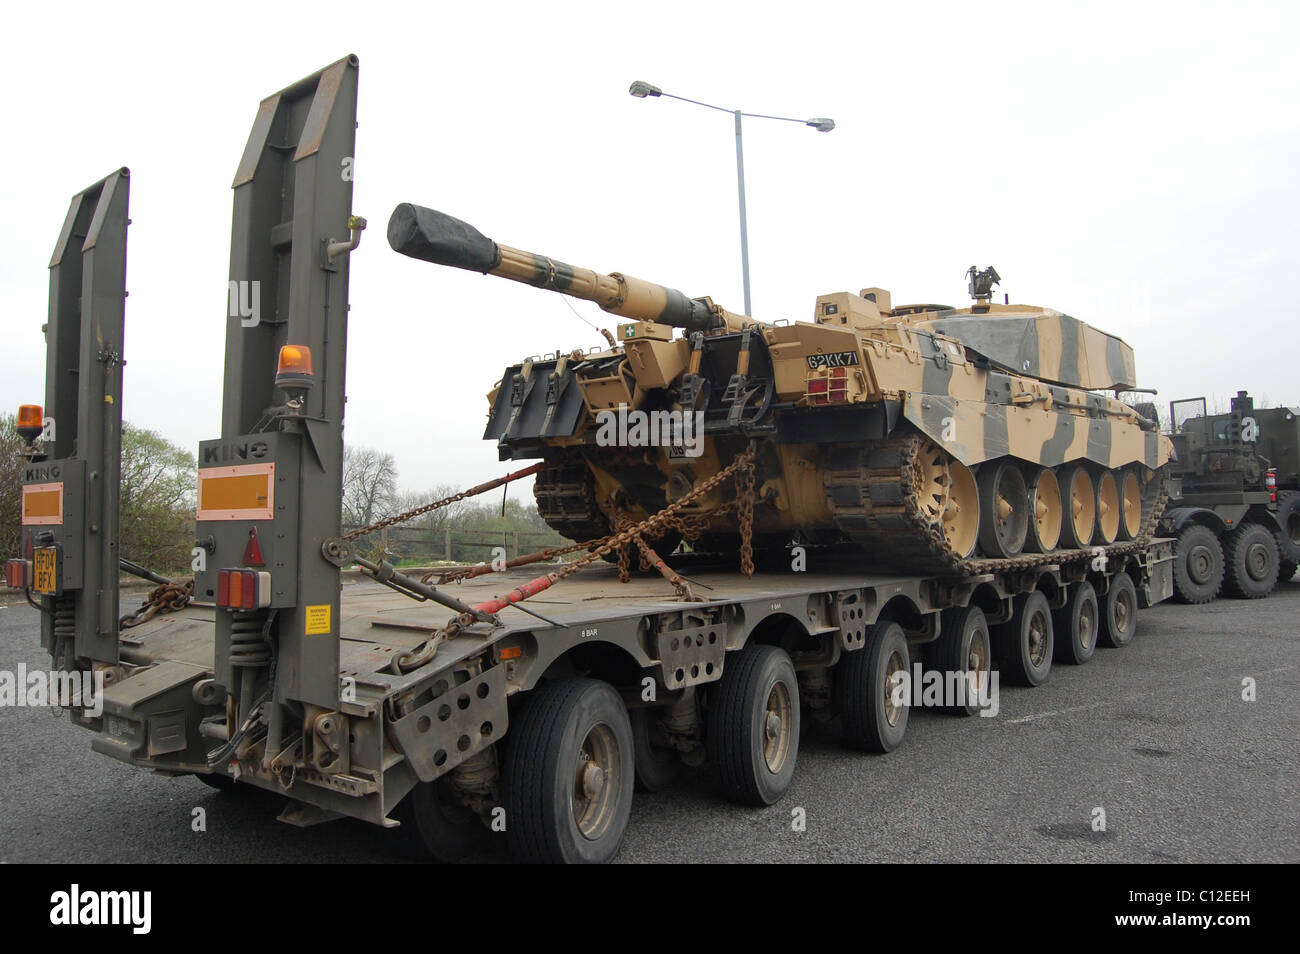 a93f03b4c9d5 FV4034 Challenger 2 is a main battle tank (MBT) currently in service with  the armies of the United Kingdom on a tank transporter